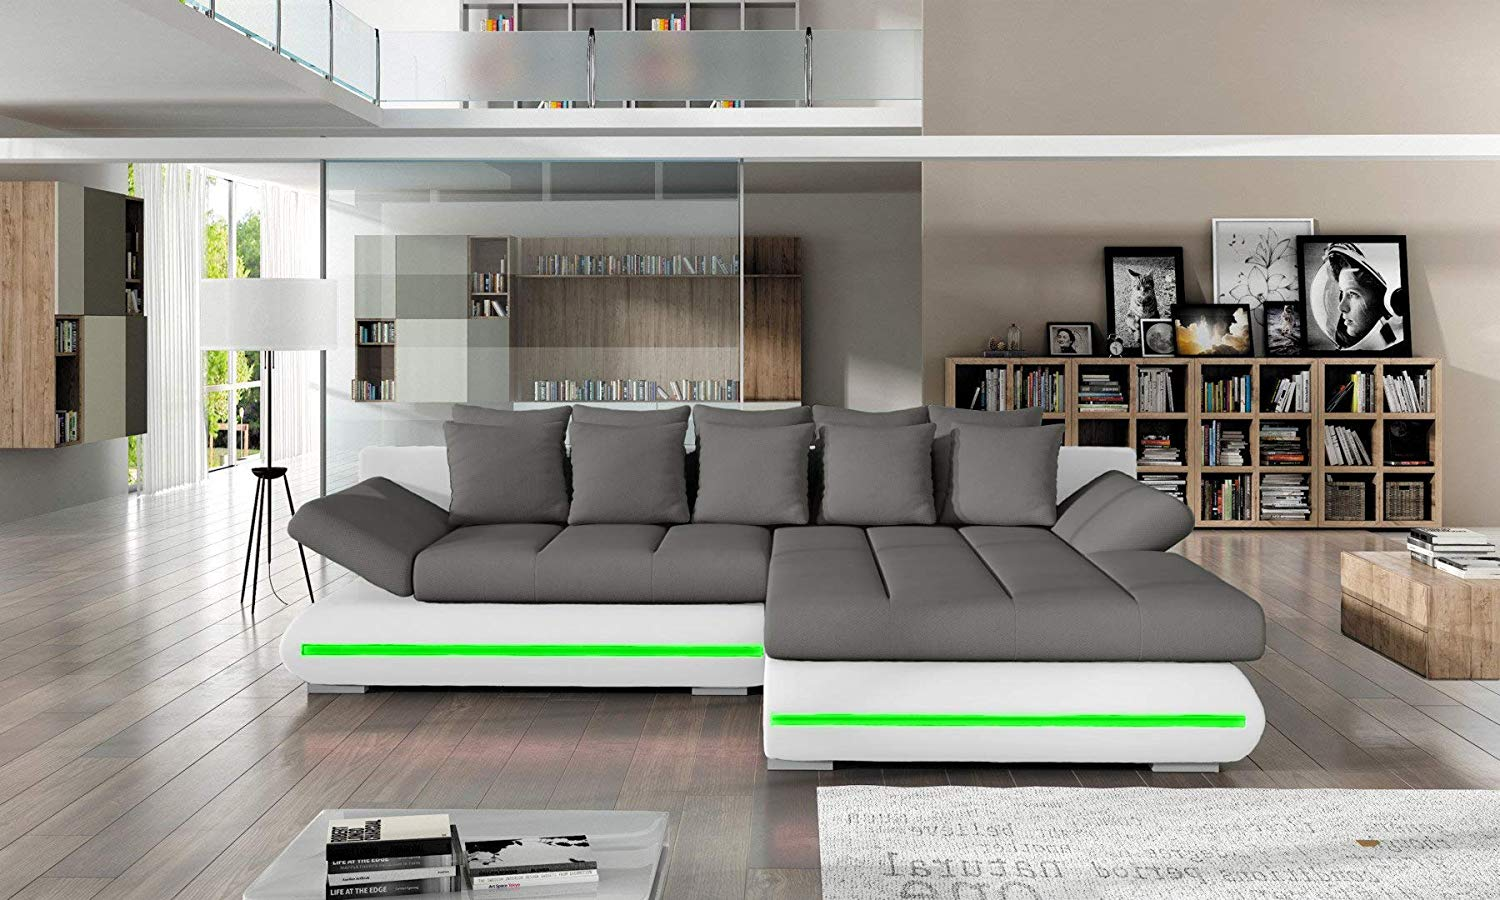 Sectional Sleeper Sofa Couch With Storage And Led Lights Petagadget